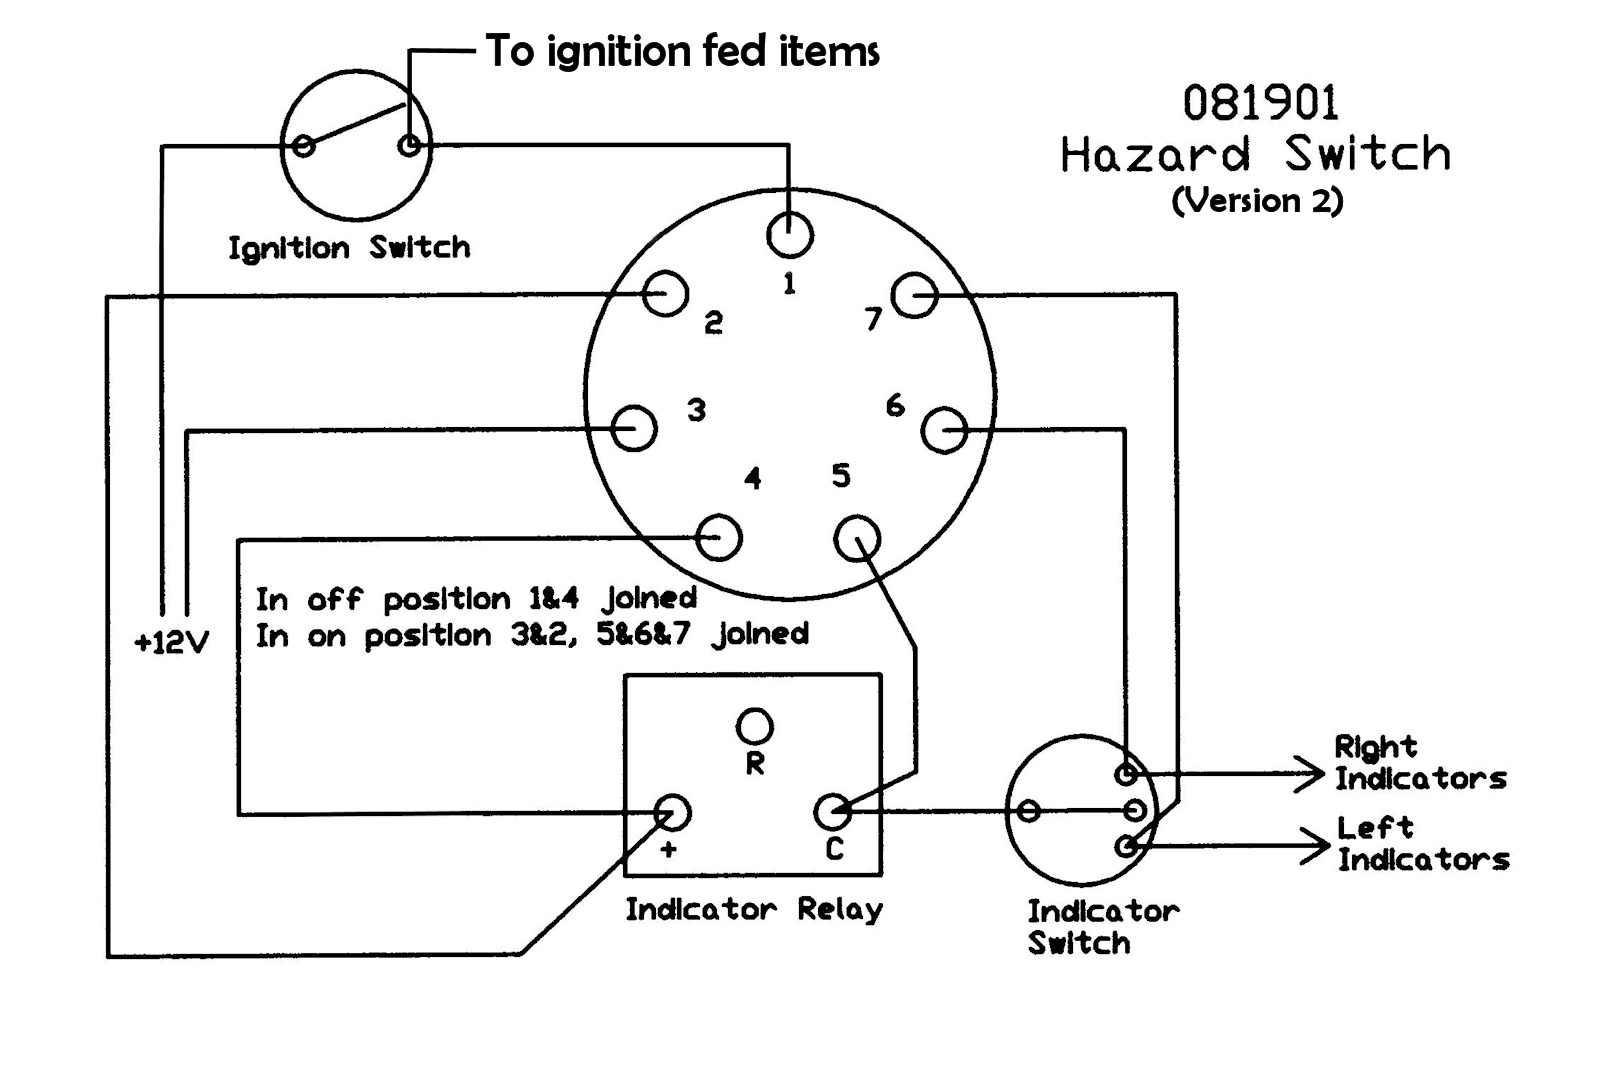 durite ignition switch wiring diagram durite image panel mounted push on hazard switch on durite ignition switch wiring diagram